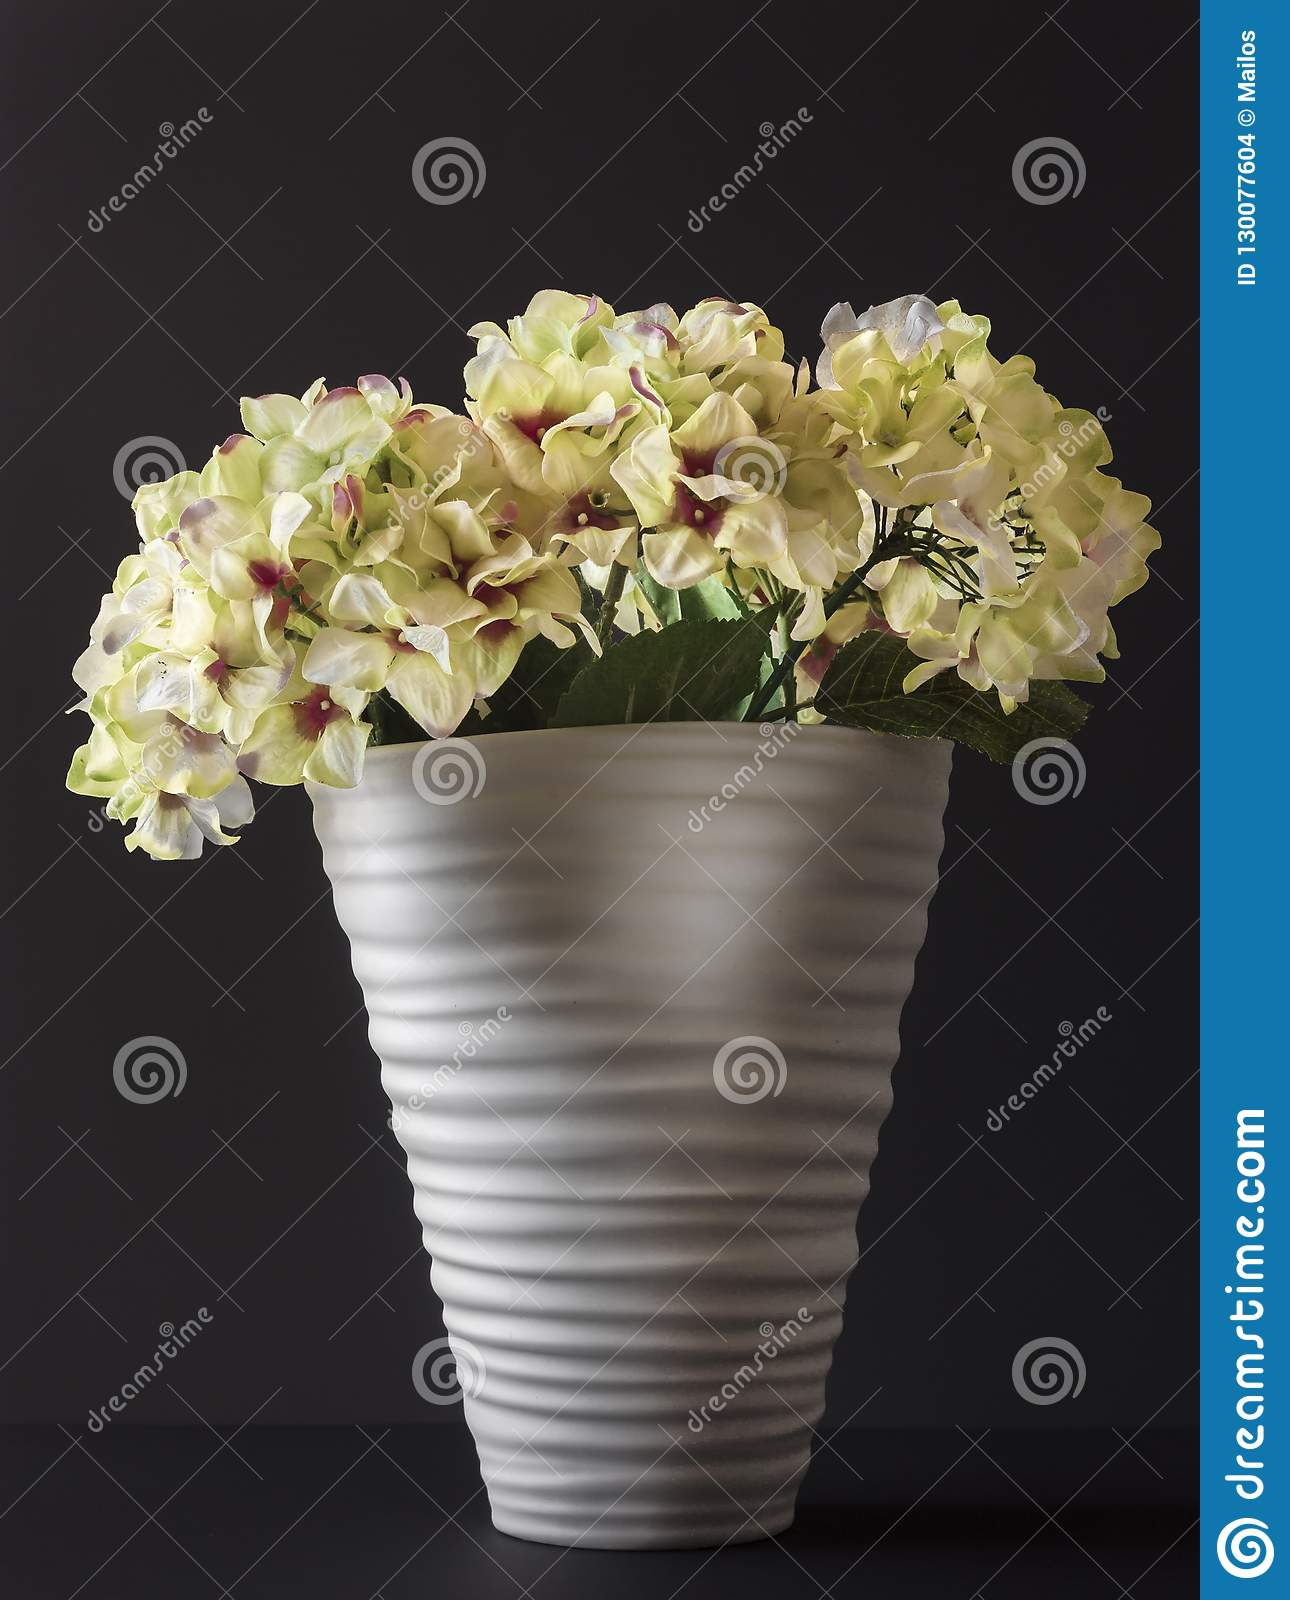 Dreamstime.com & Fake Flowers In A Vase Of White Color On A Black Background ...